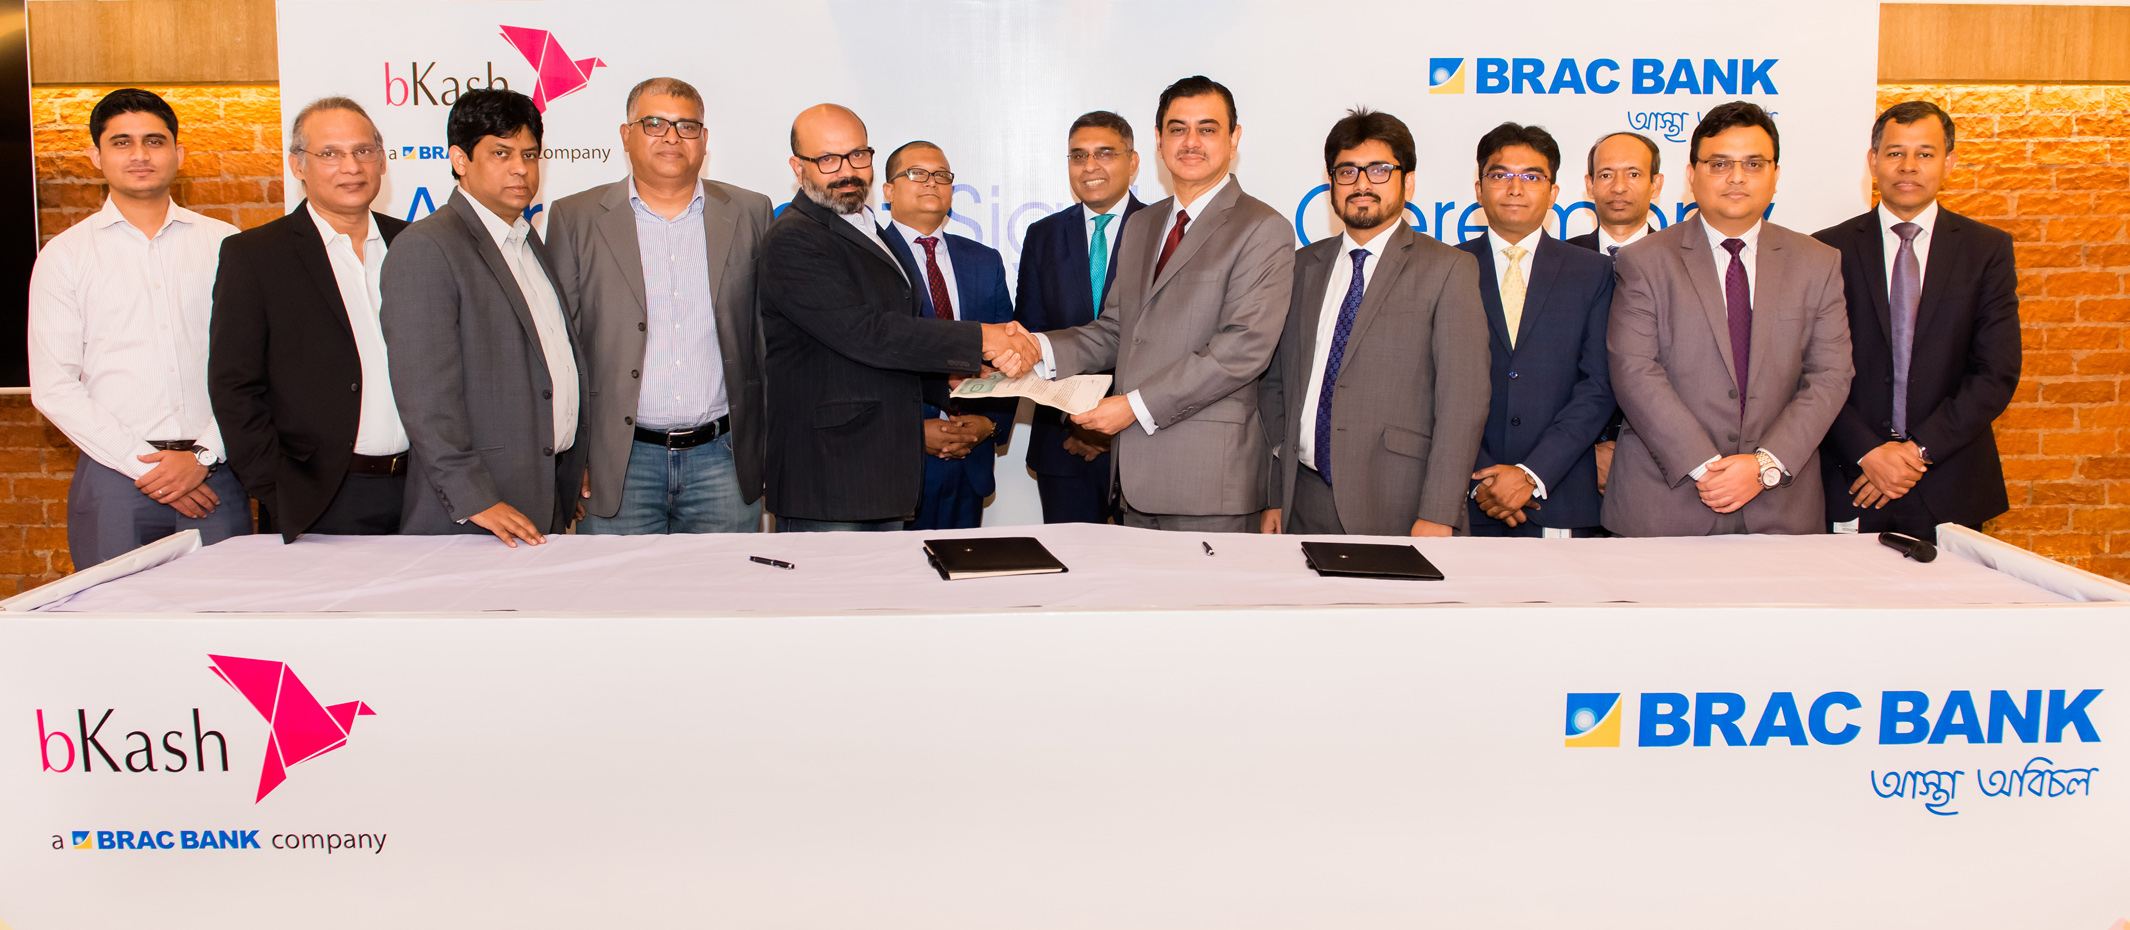 BRAC Bank & bKash sign agreement for fund transfer facility between